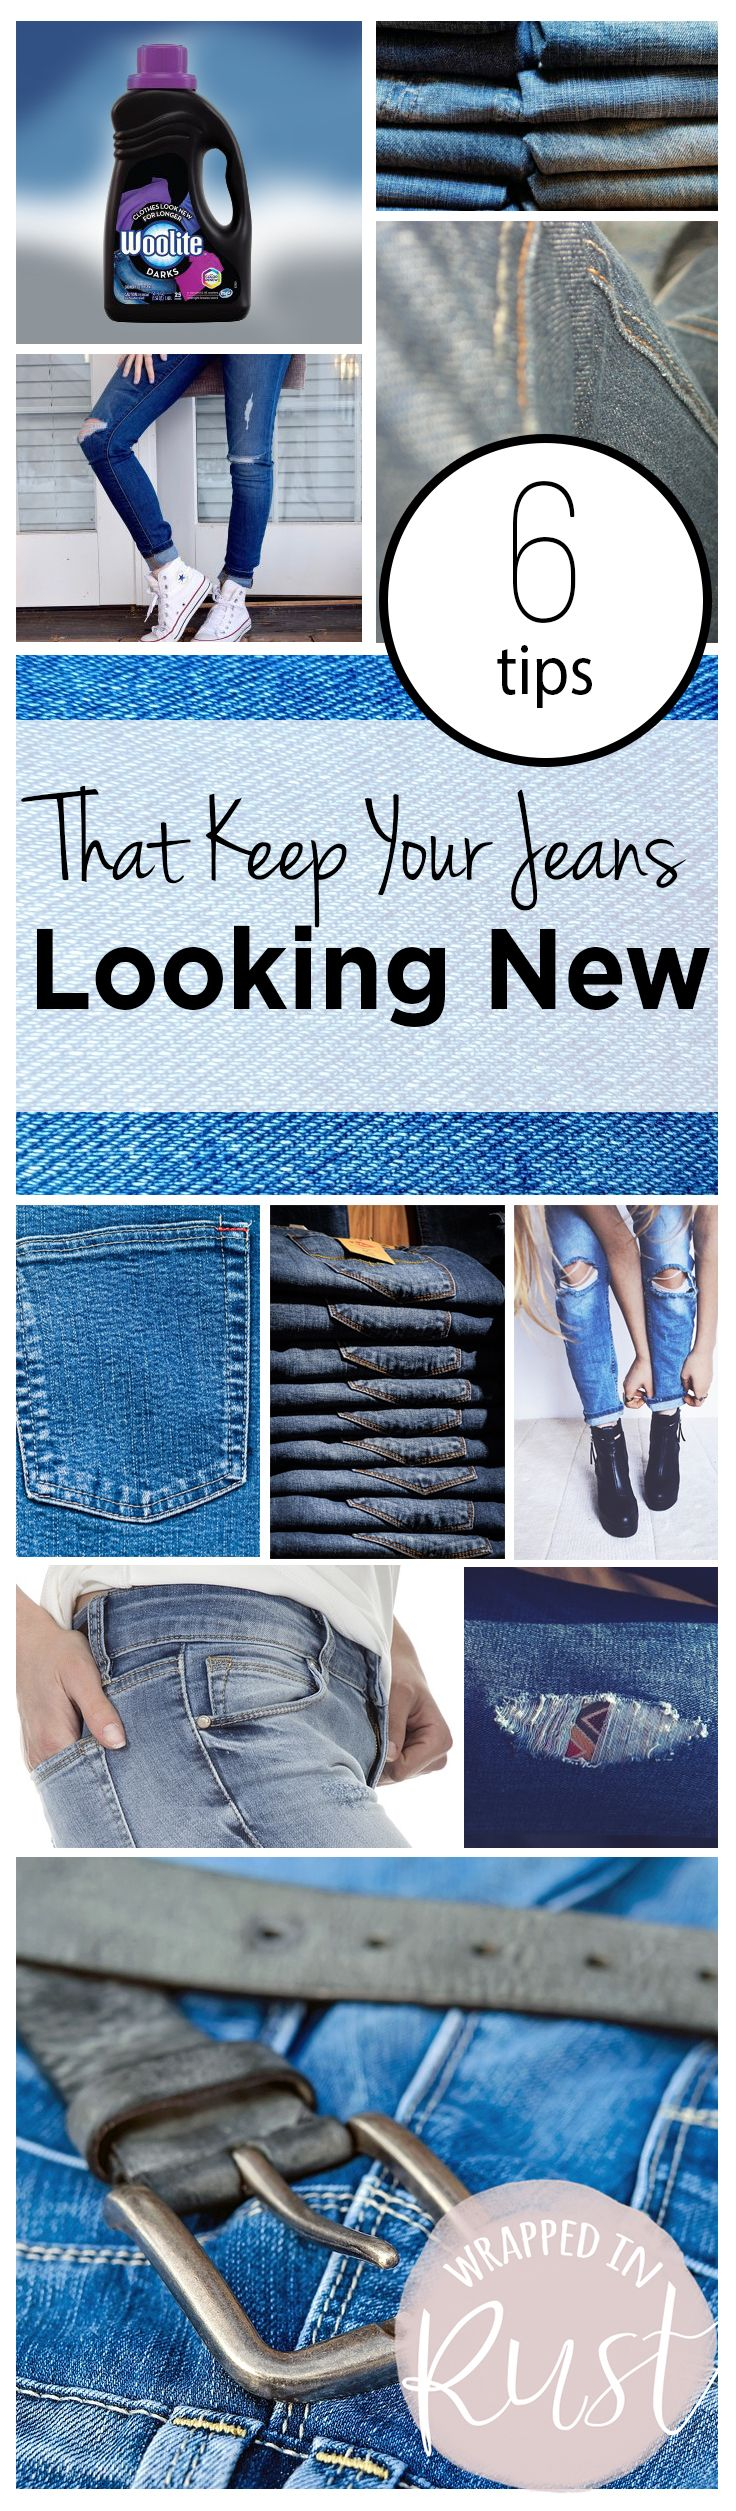 How to Keep Your Jeans Looking New, How to Care for Your Jeans, Caring for Your Jeans, Clothing, Clothing Hacks, Clothing Care Hacks, How to Keep Your Jeans Looking New, Popular Pin